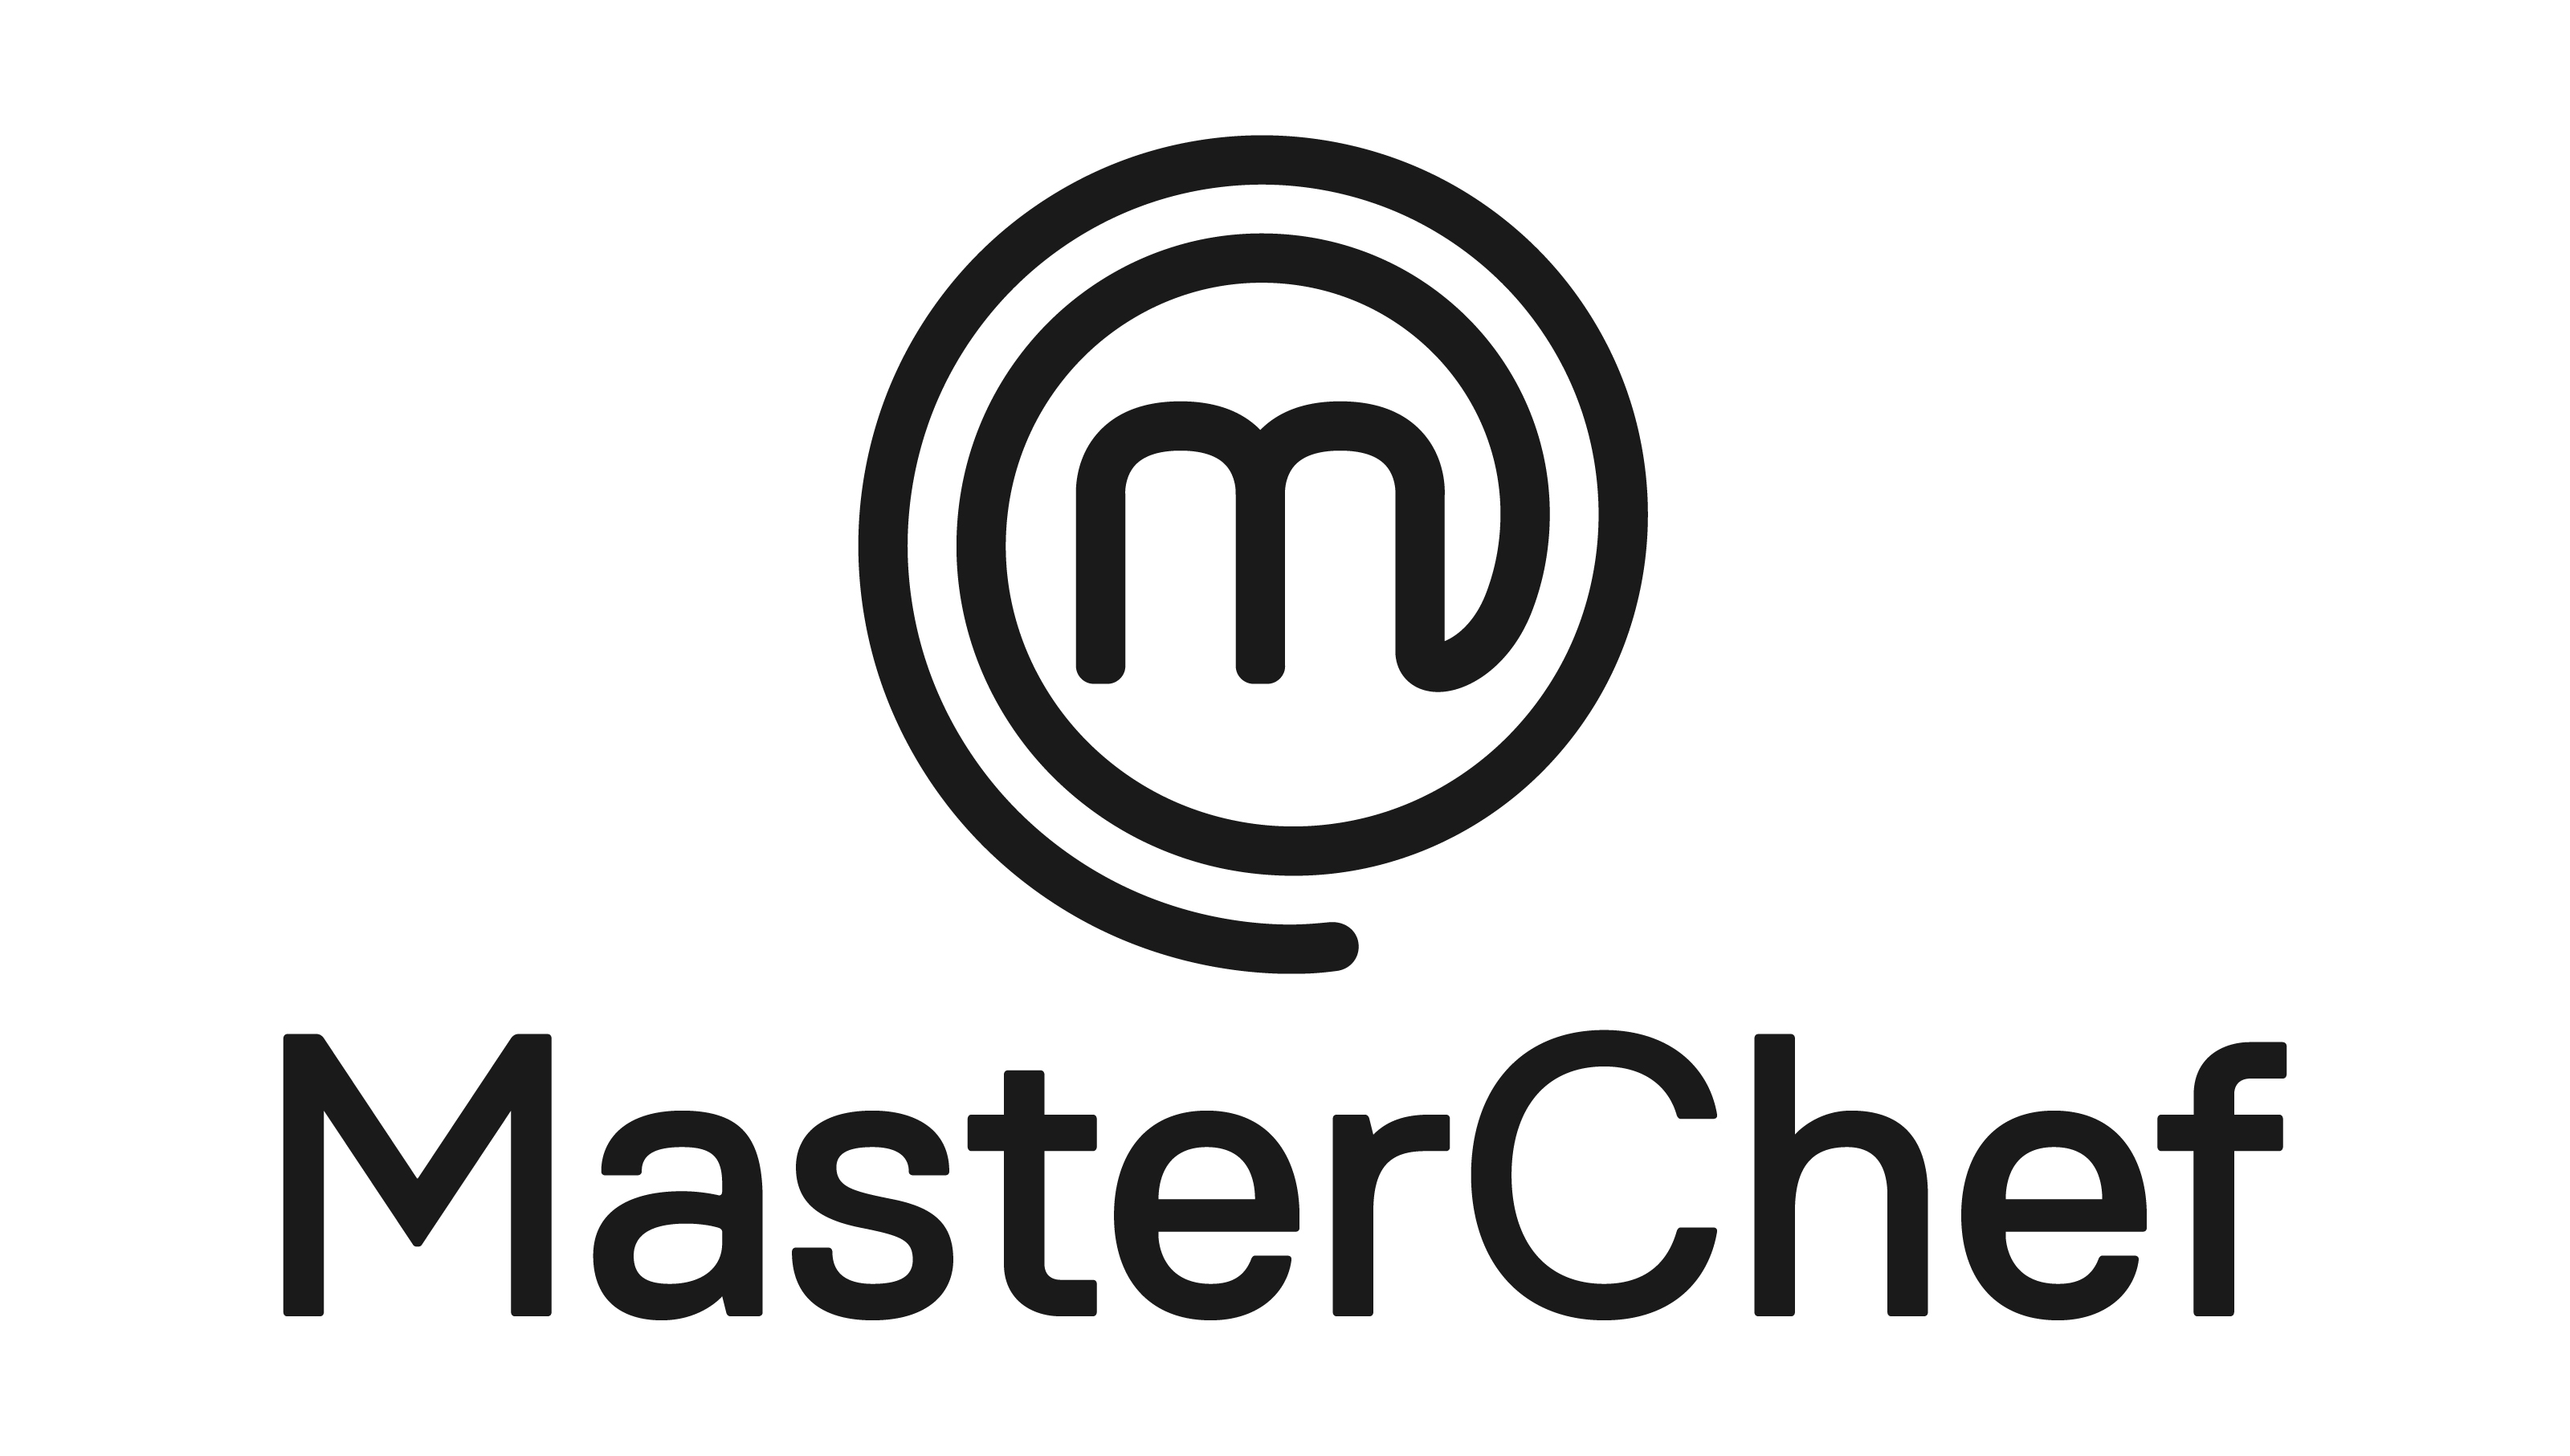 masterchef - photo #36